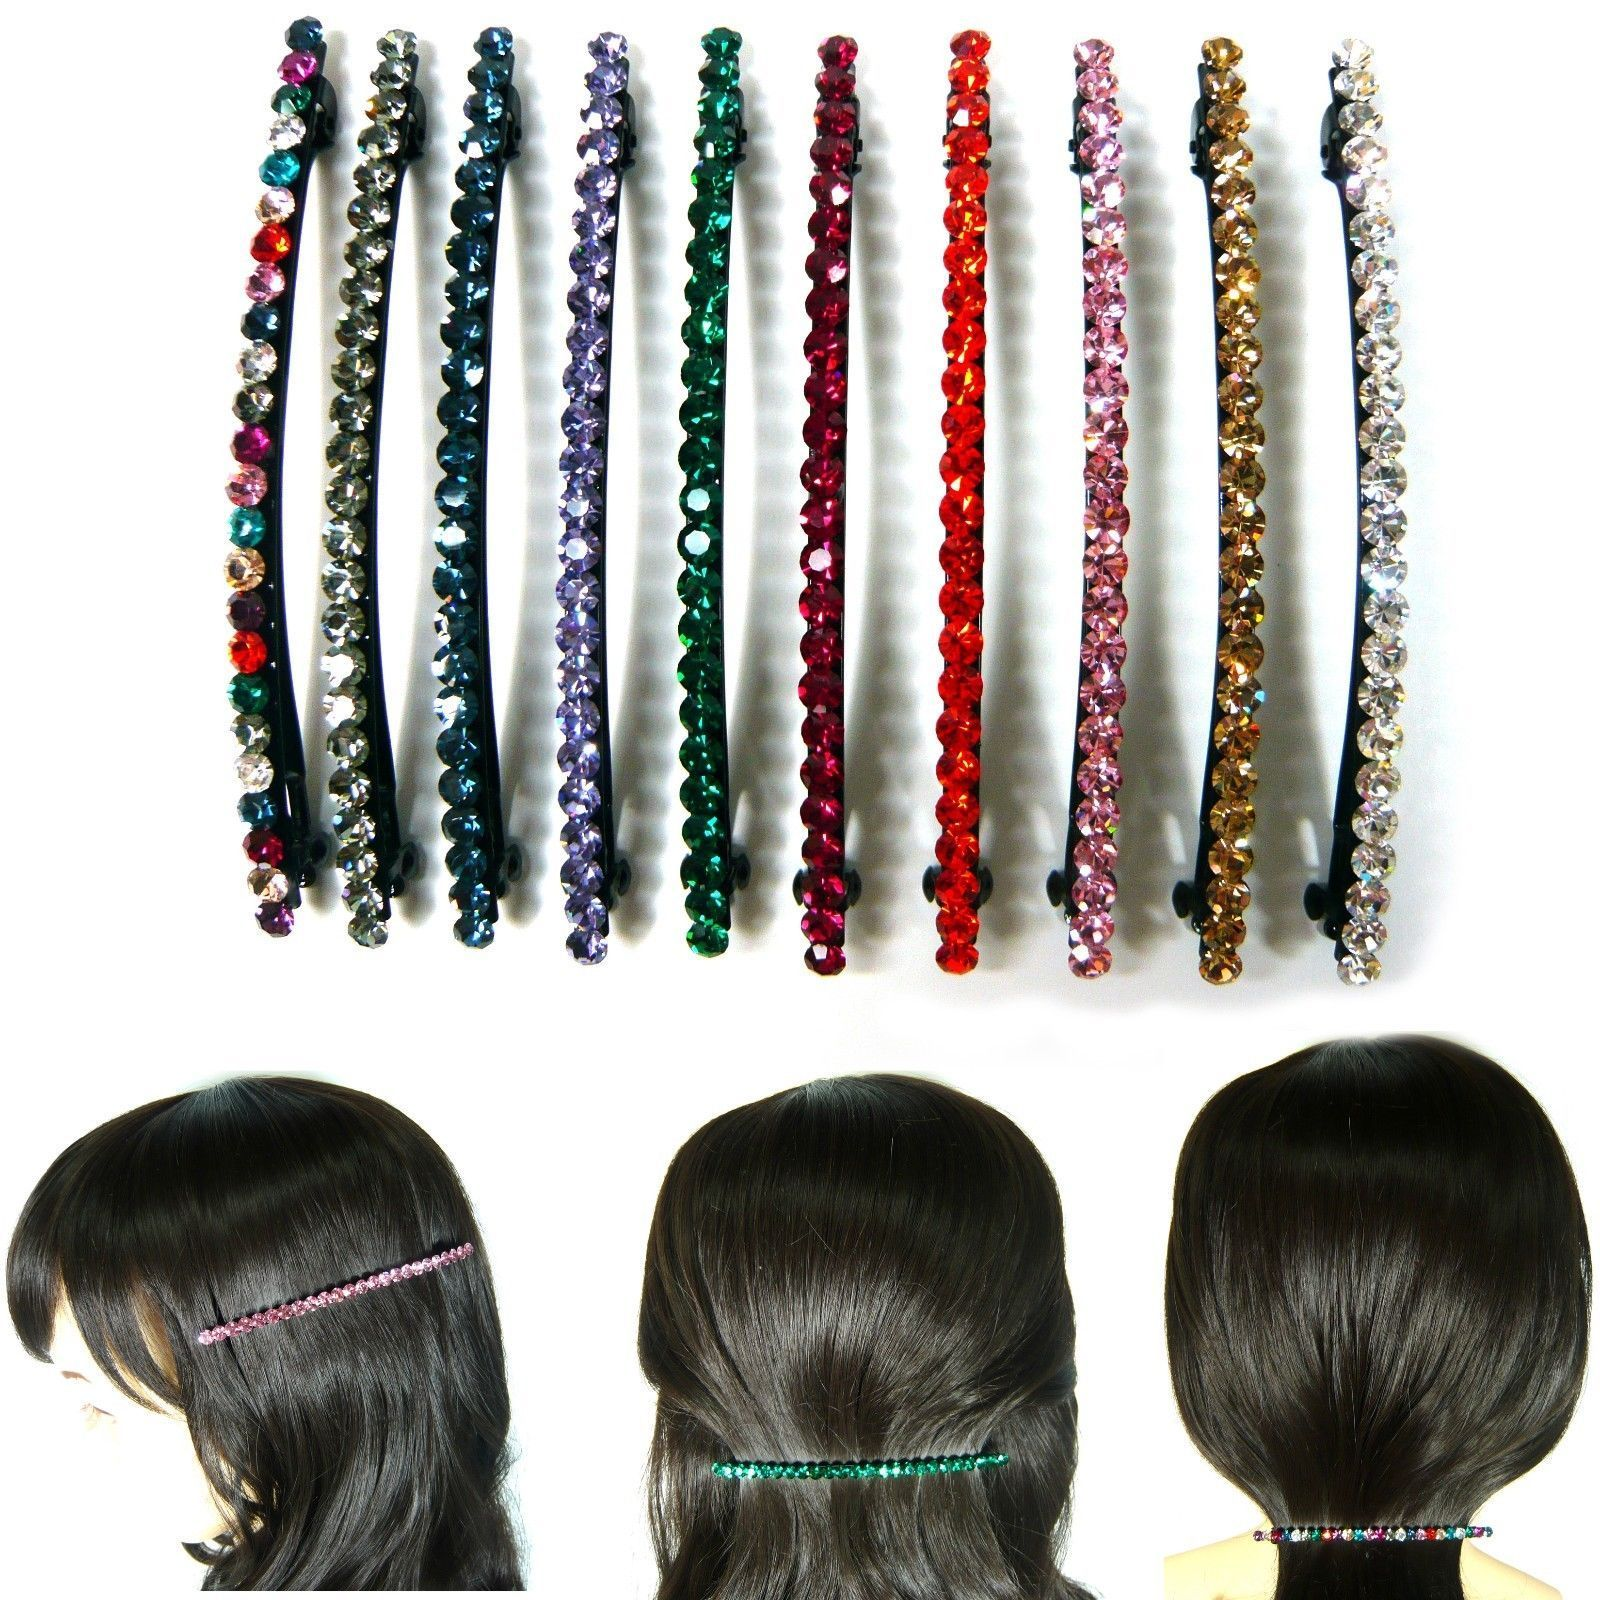 Bling Crystal Rhinestone Hair Jewelry Automatic Barrette Clip Pin Accessory New